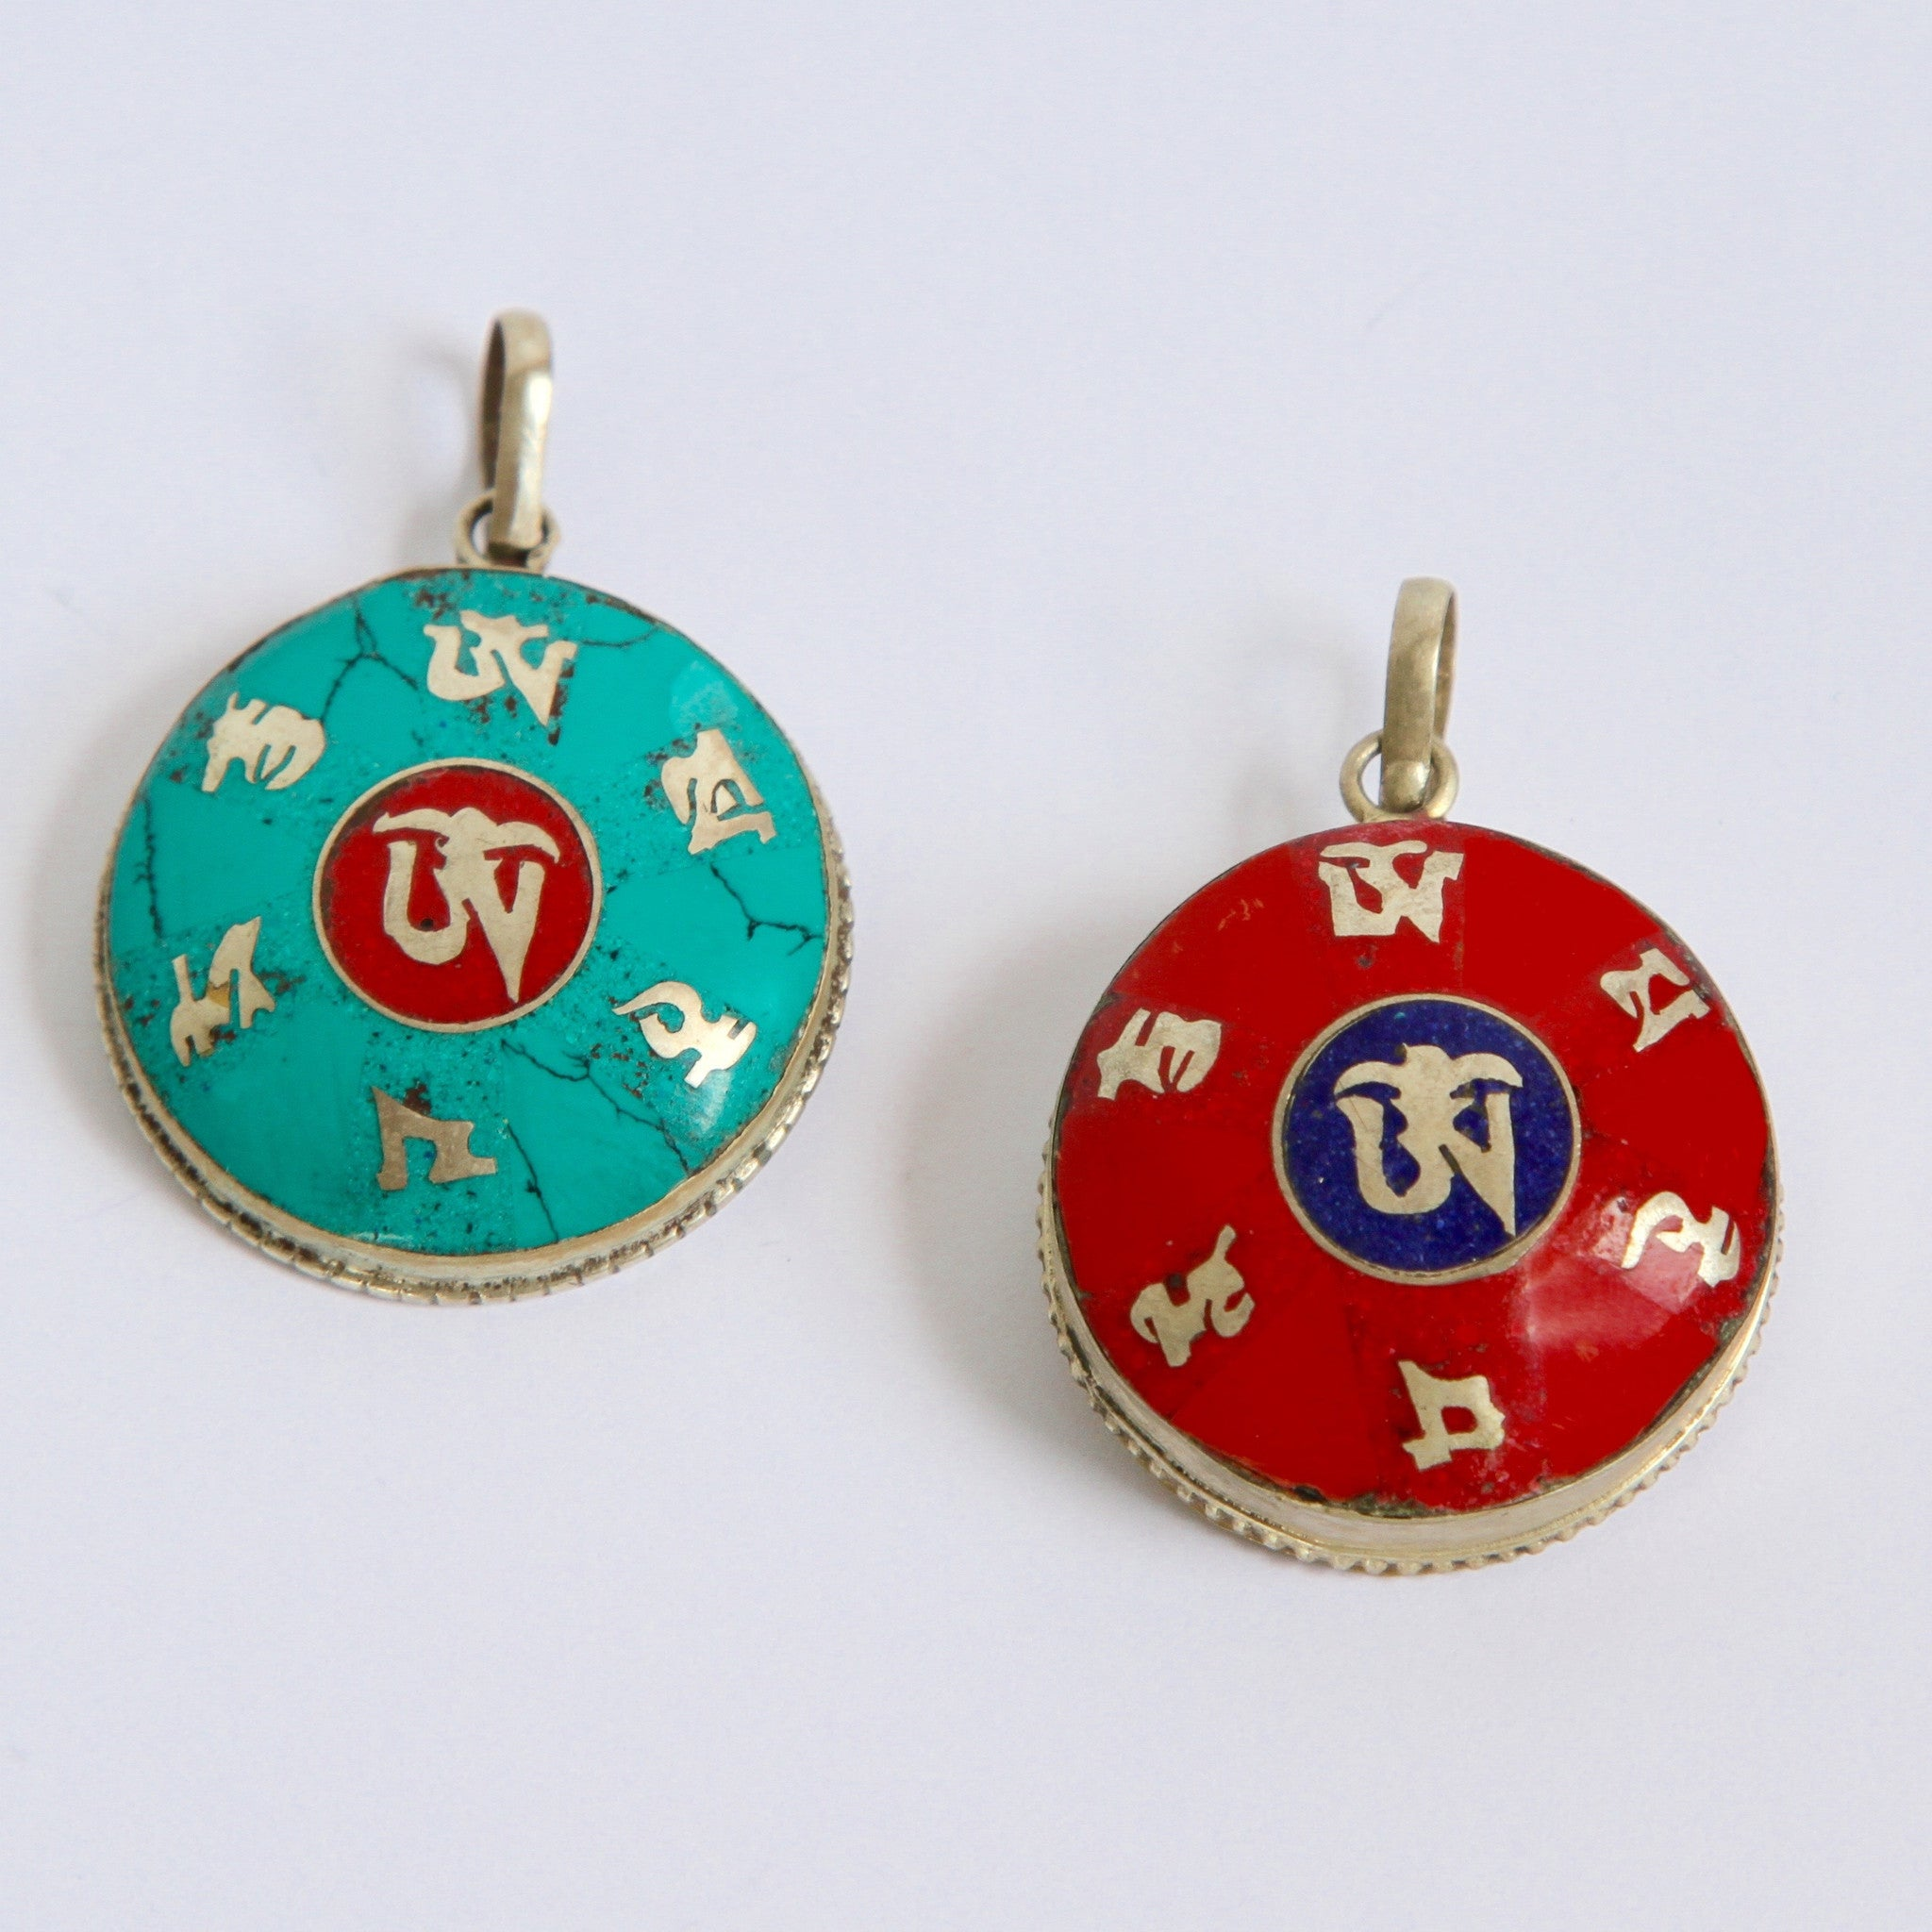 OM with the Mantra of Compassion - Pendant or Gau